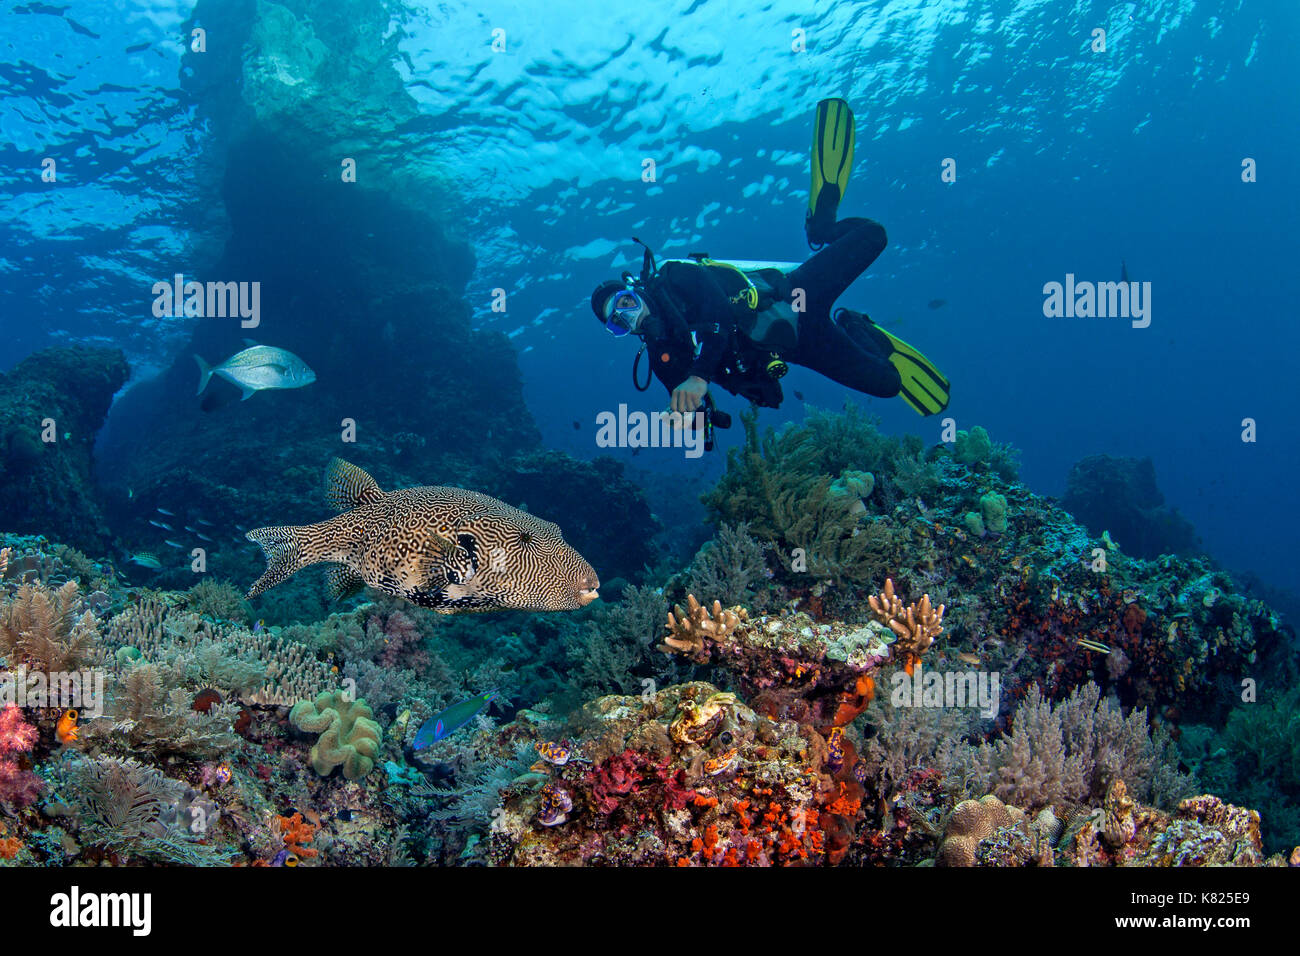 Scuba diver looks on as large map pufferfish (Arothron mappa) swims through coral reef. Raja Ampat, Indonesia. - Stock Image